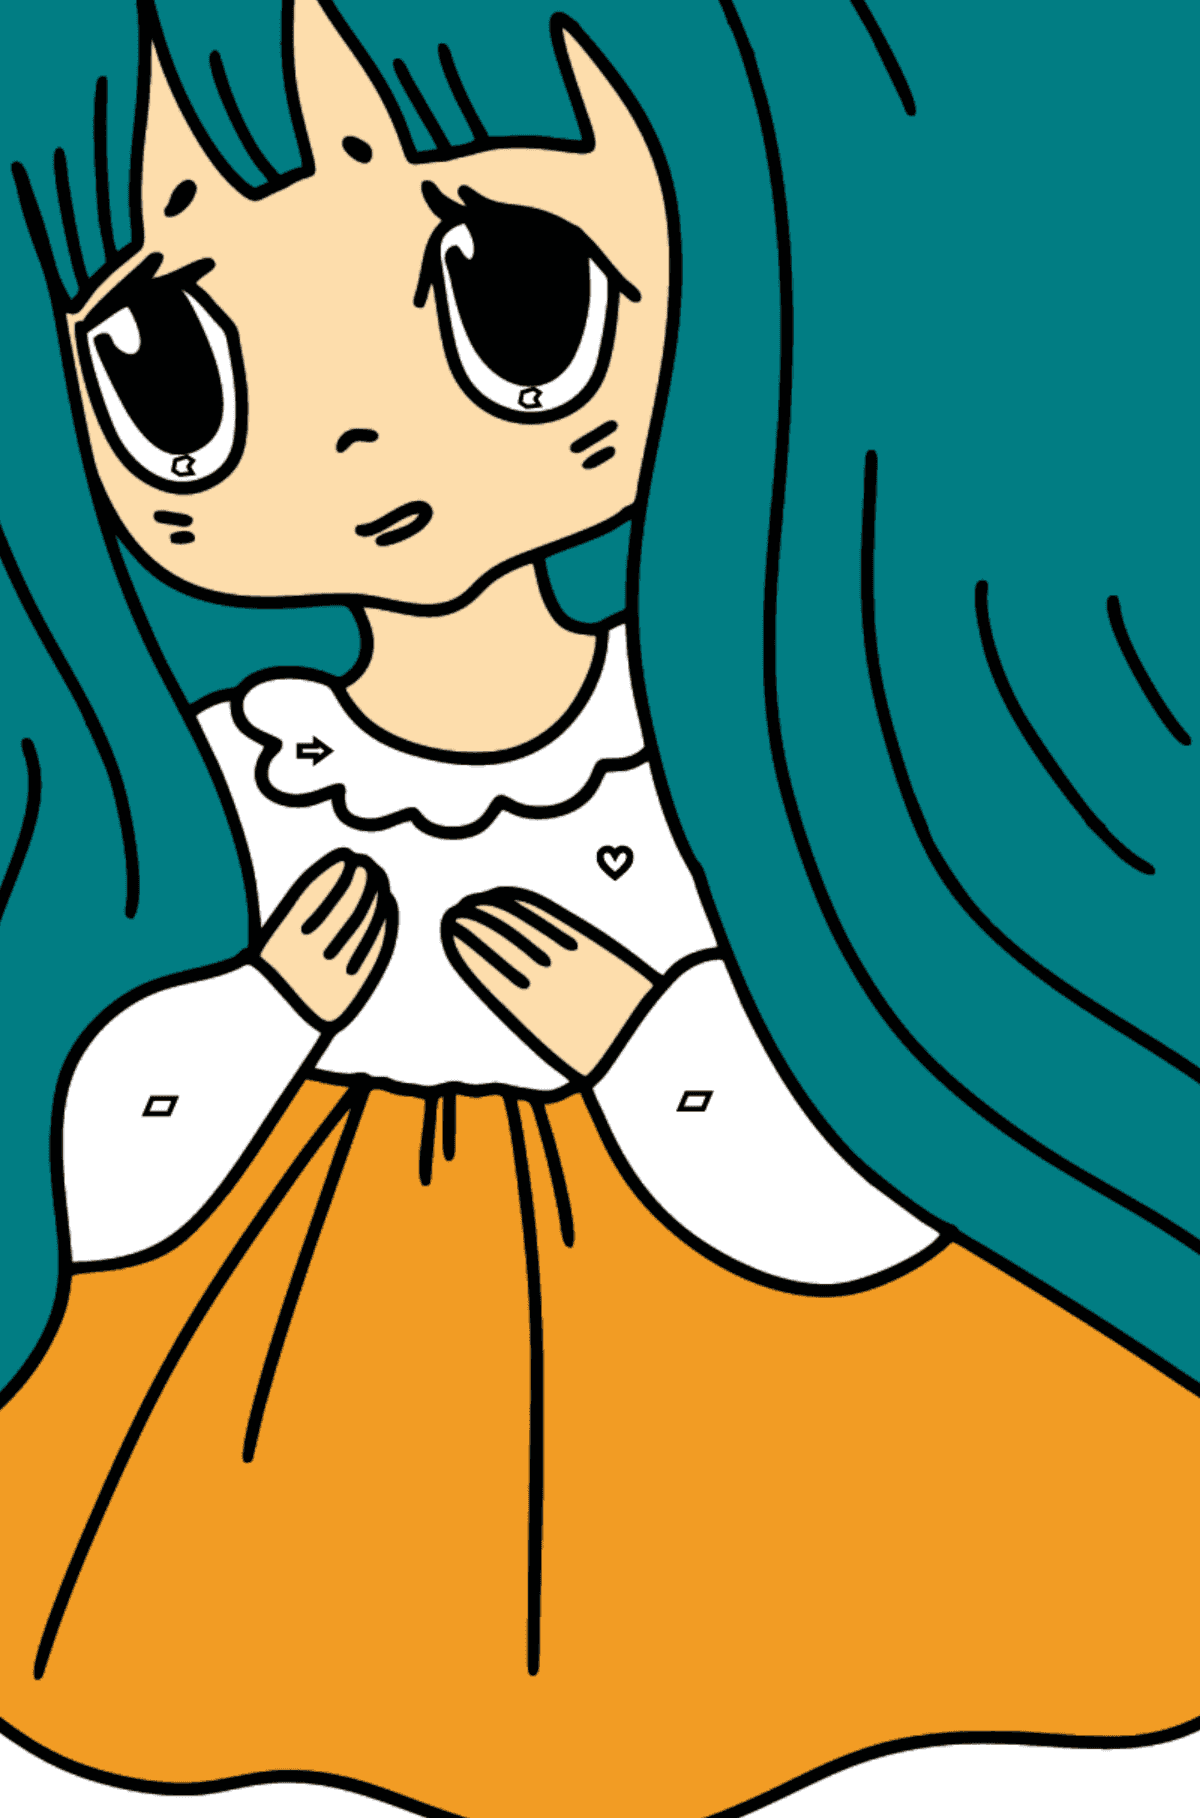 Anime Sad Girl Coloring Pages - Coloring by Geometric Shapes for Kids